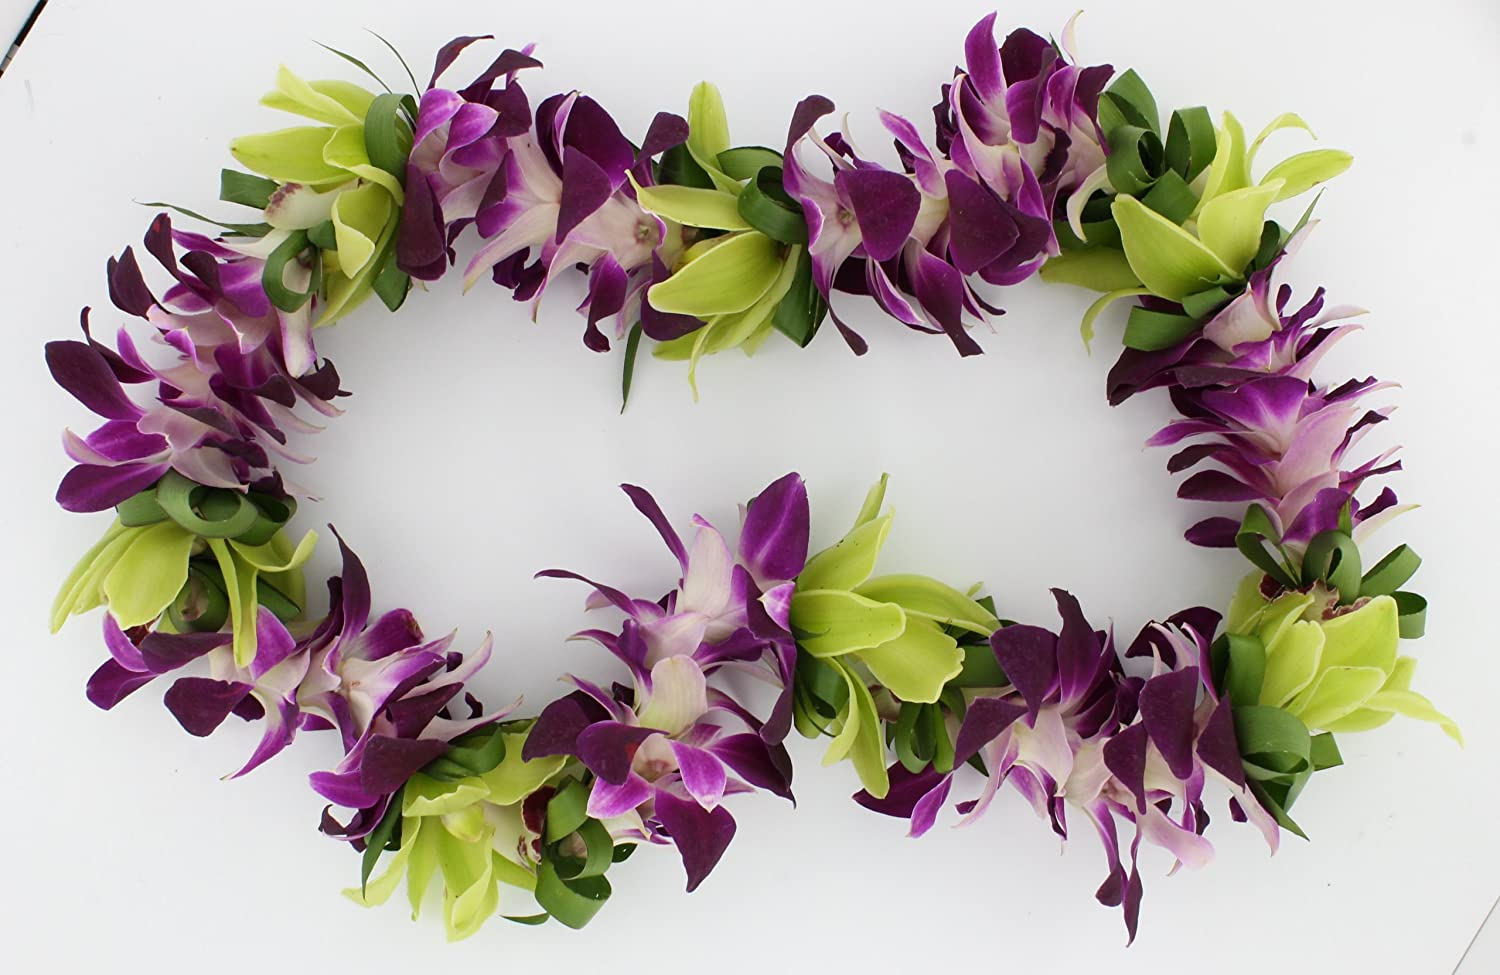 Amazon hawaiian fresh flowers floral leis lei for retirement amazon hawaiian fresh flowers floral leis lei for retirement graduation birthdays weddings achievement celebration and any special occasions izmirmasajfo Image collections